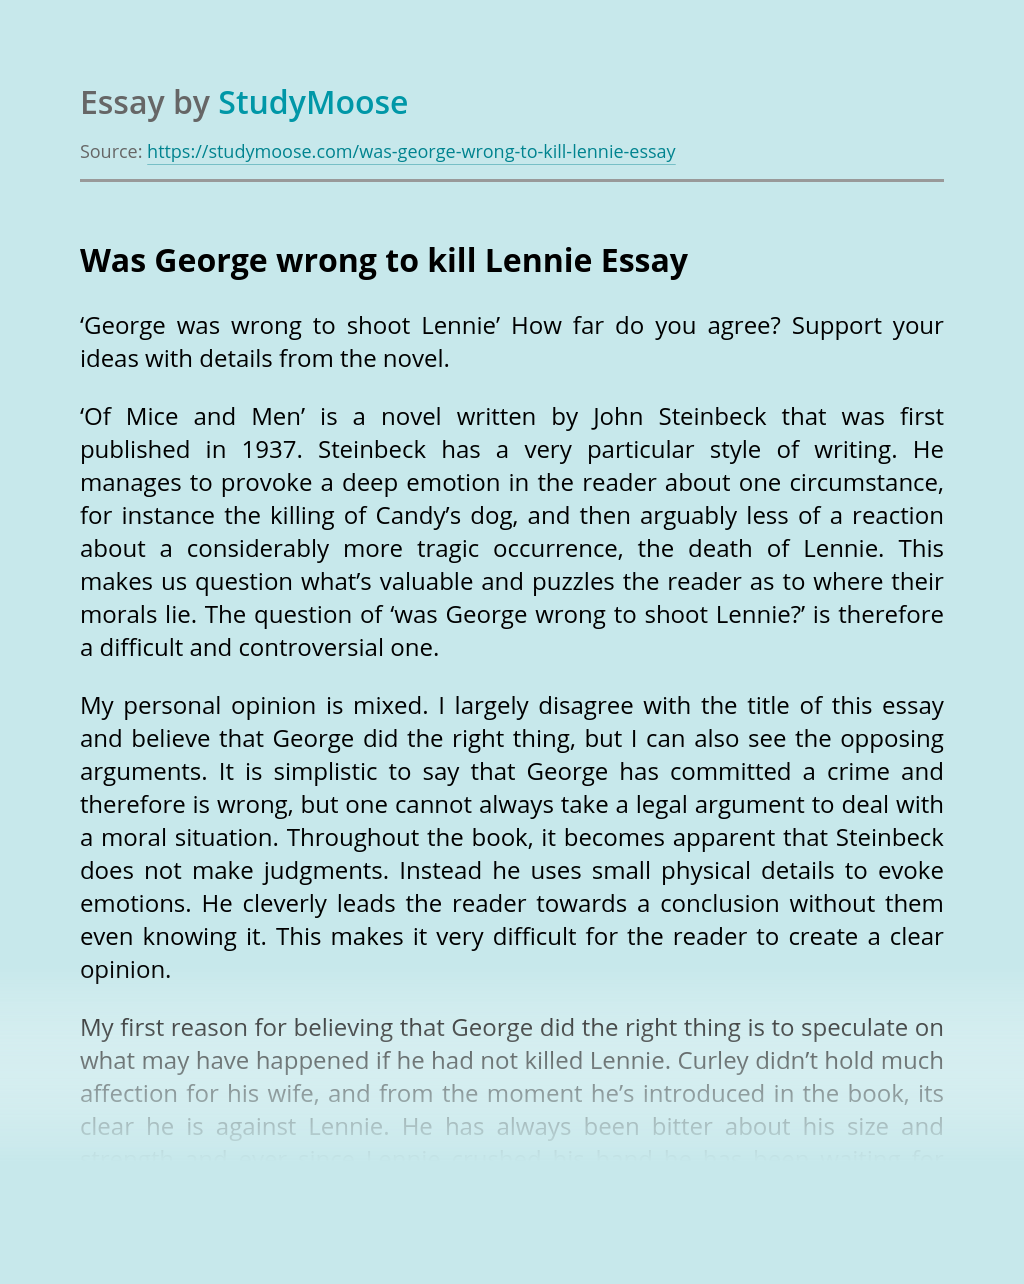 Was George wrong to kill Lennie